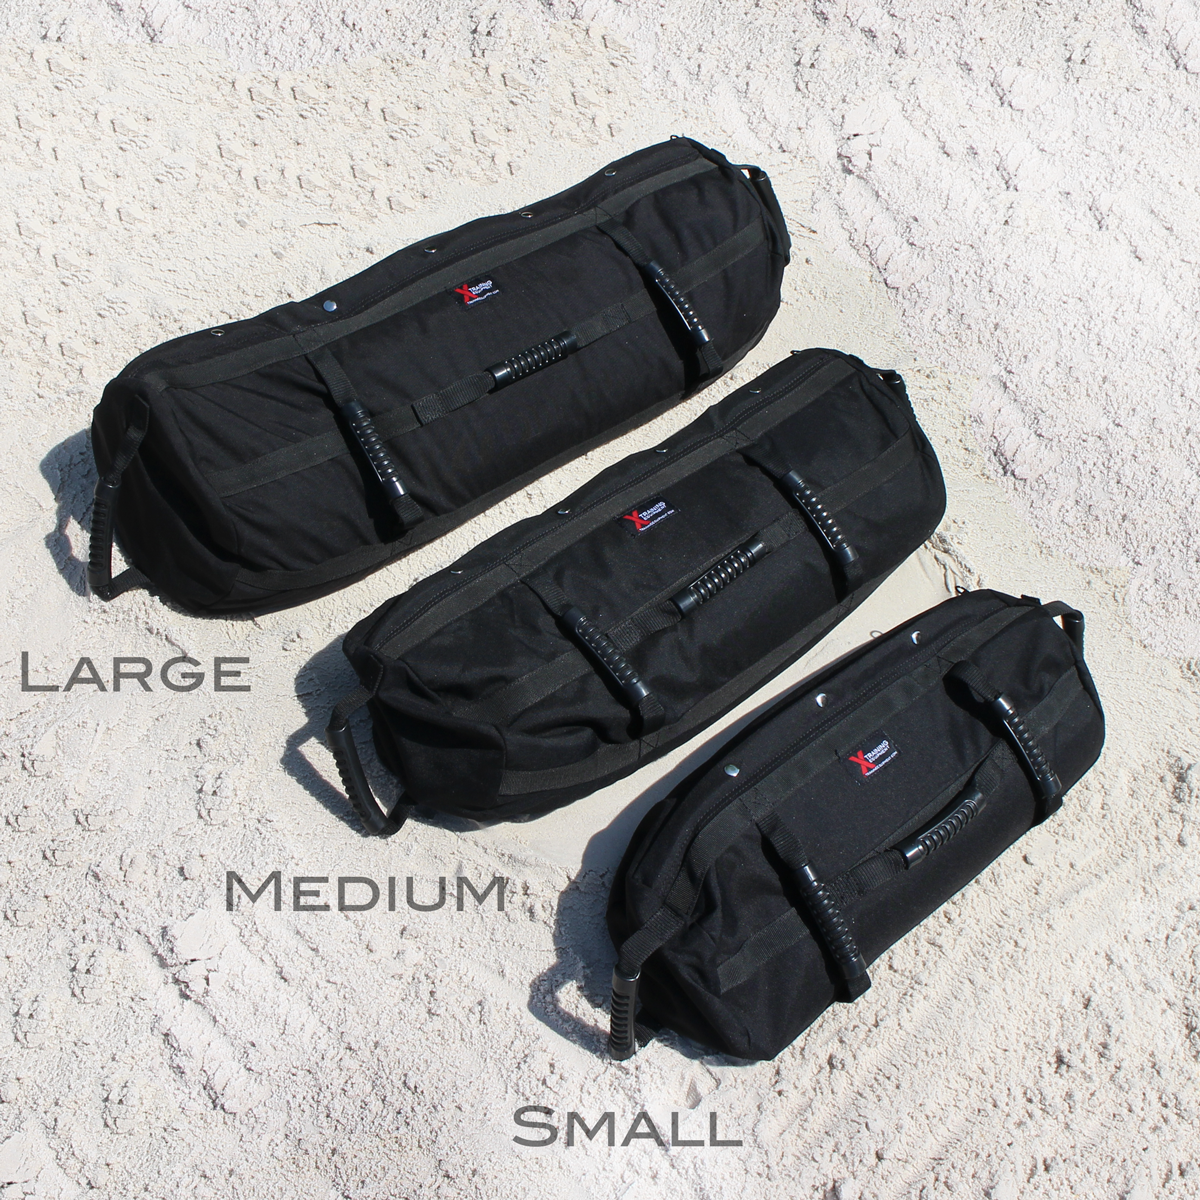 Xte Sandbags All Sand Sales Of Shirts With Stronger